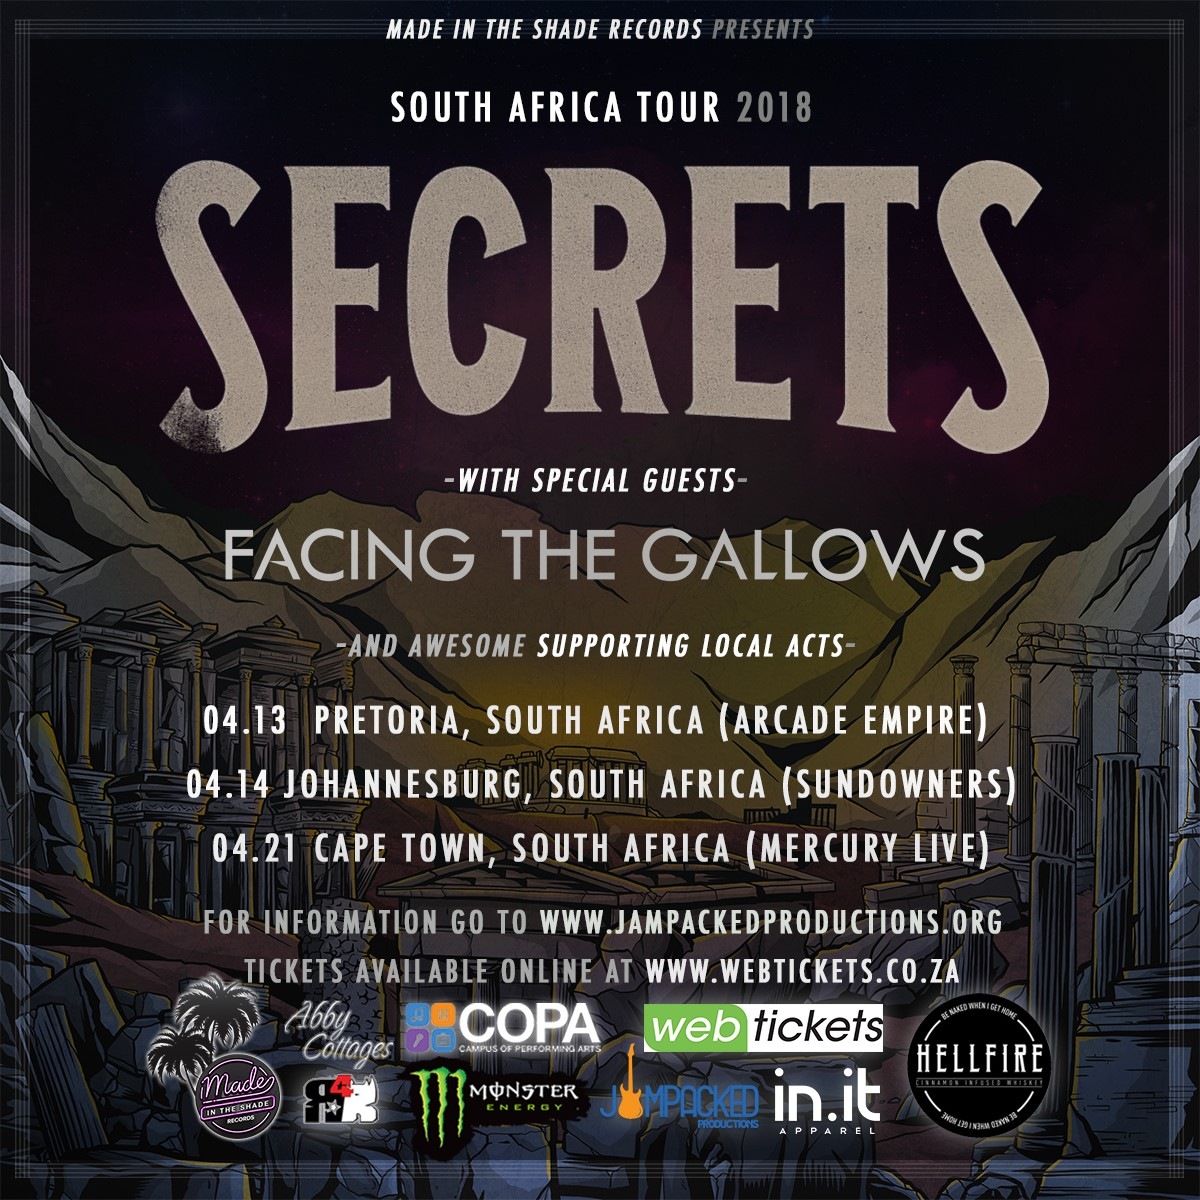 Secrets World Tour posts for the South Africa stops